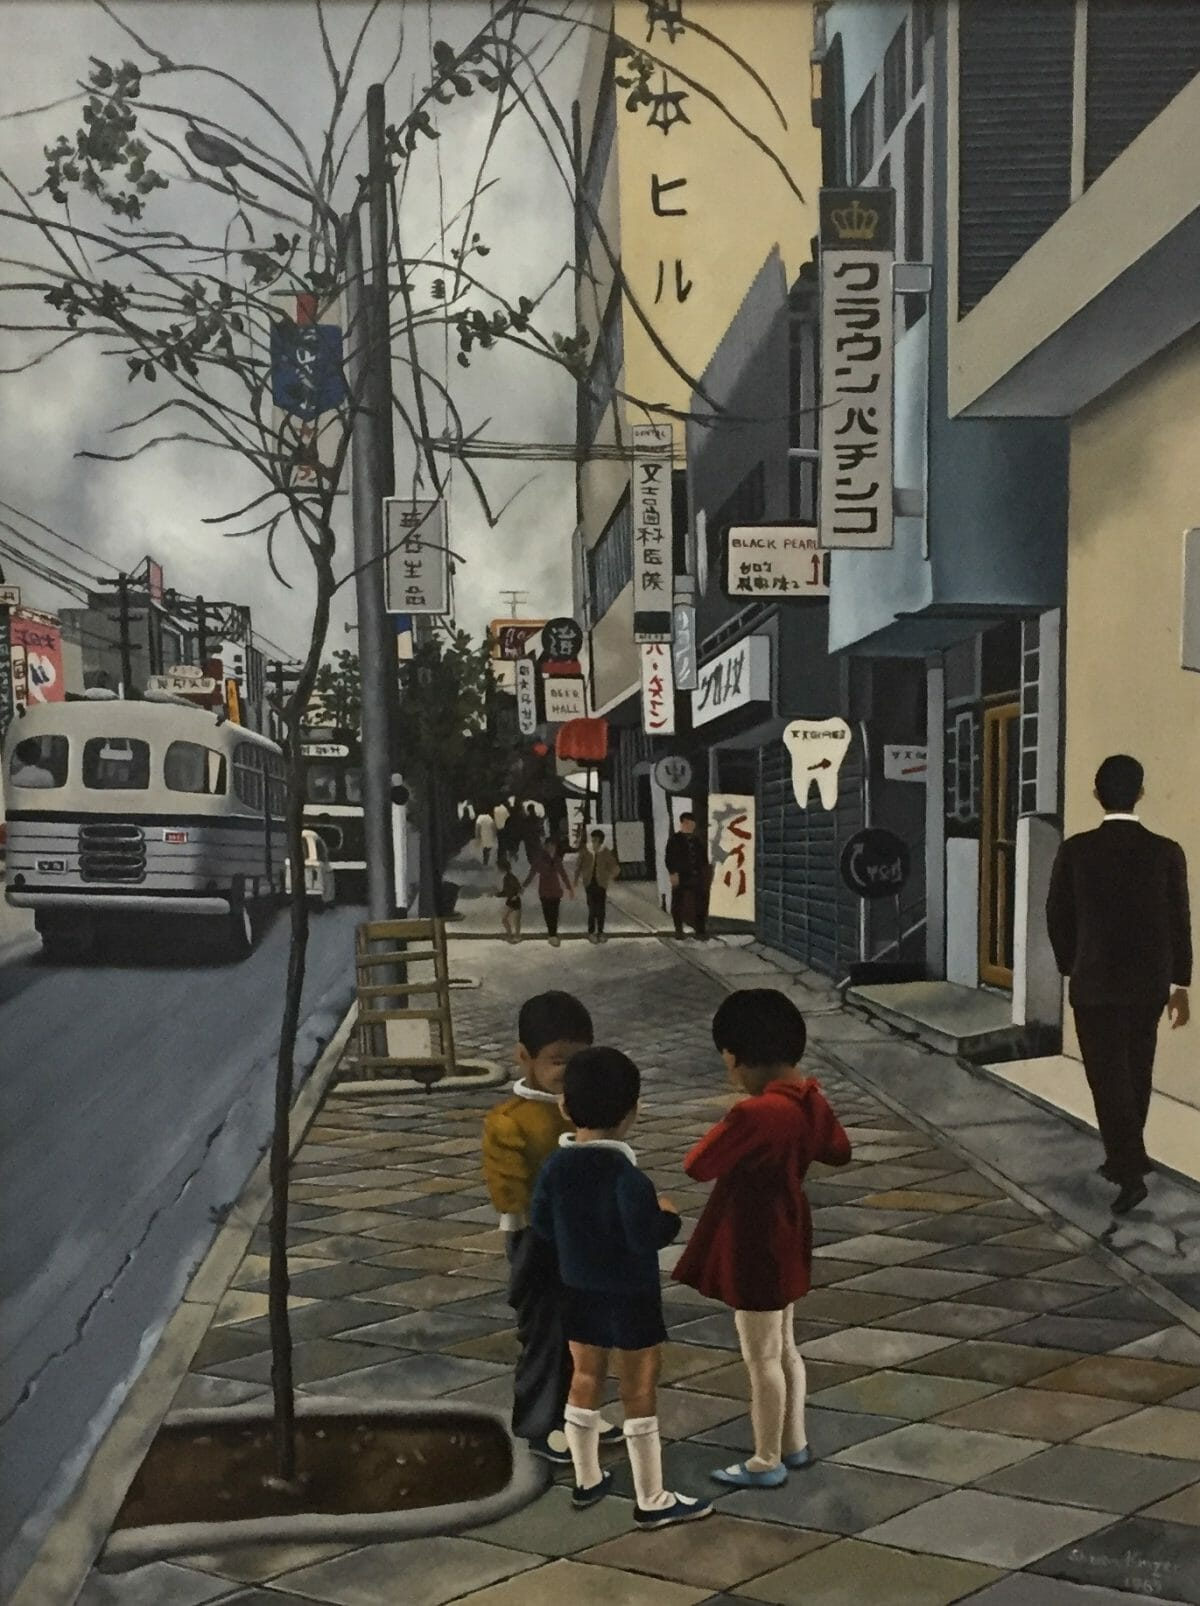 Okinawa street scene with children and a city bus.